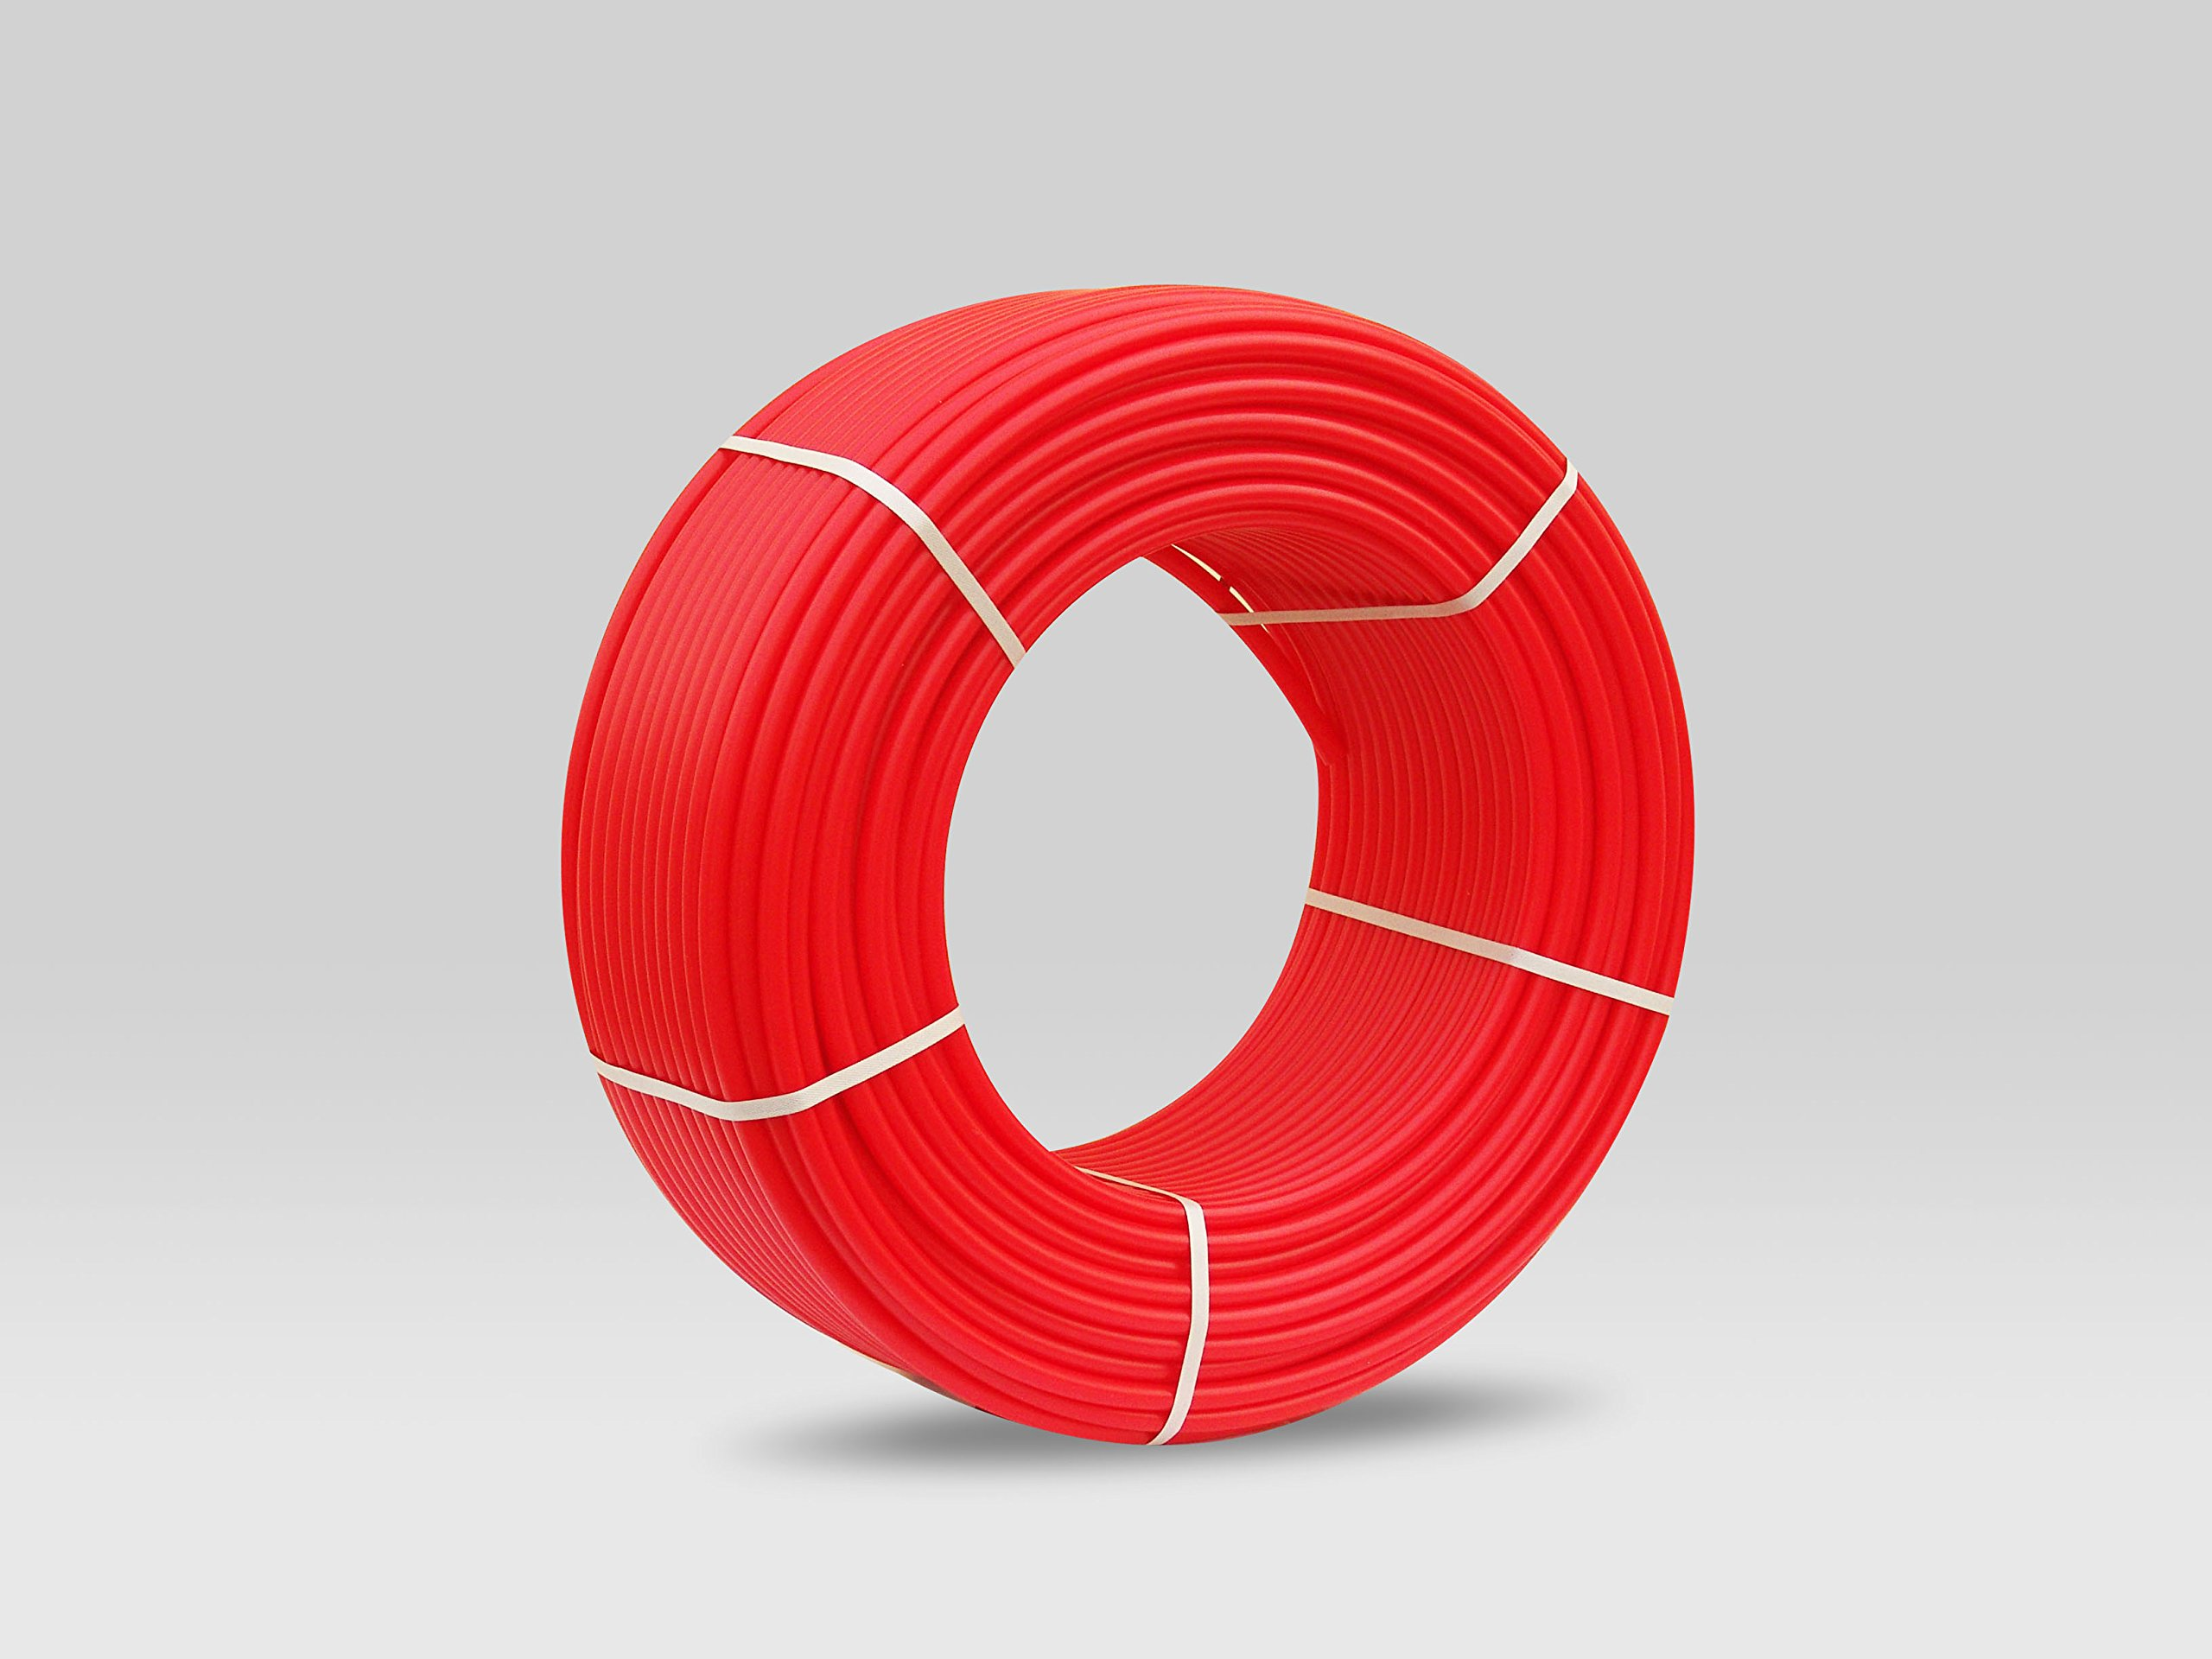 Cheap Pex Piping Systems, find Pex Piping Systems deals on